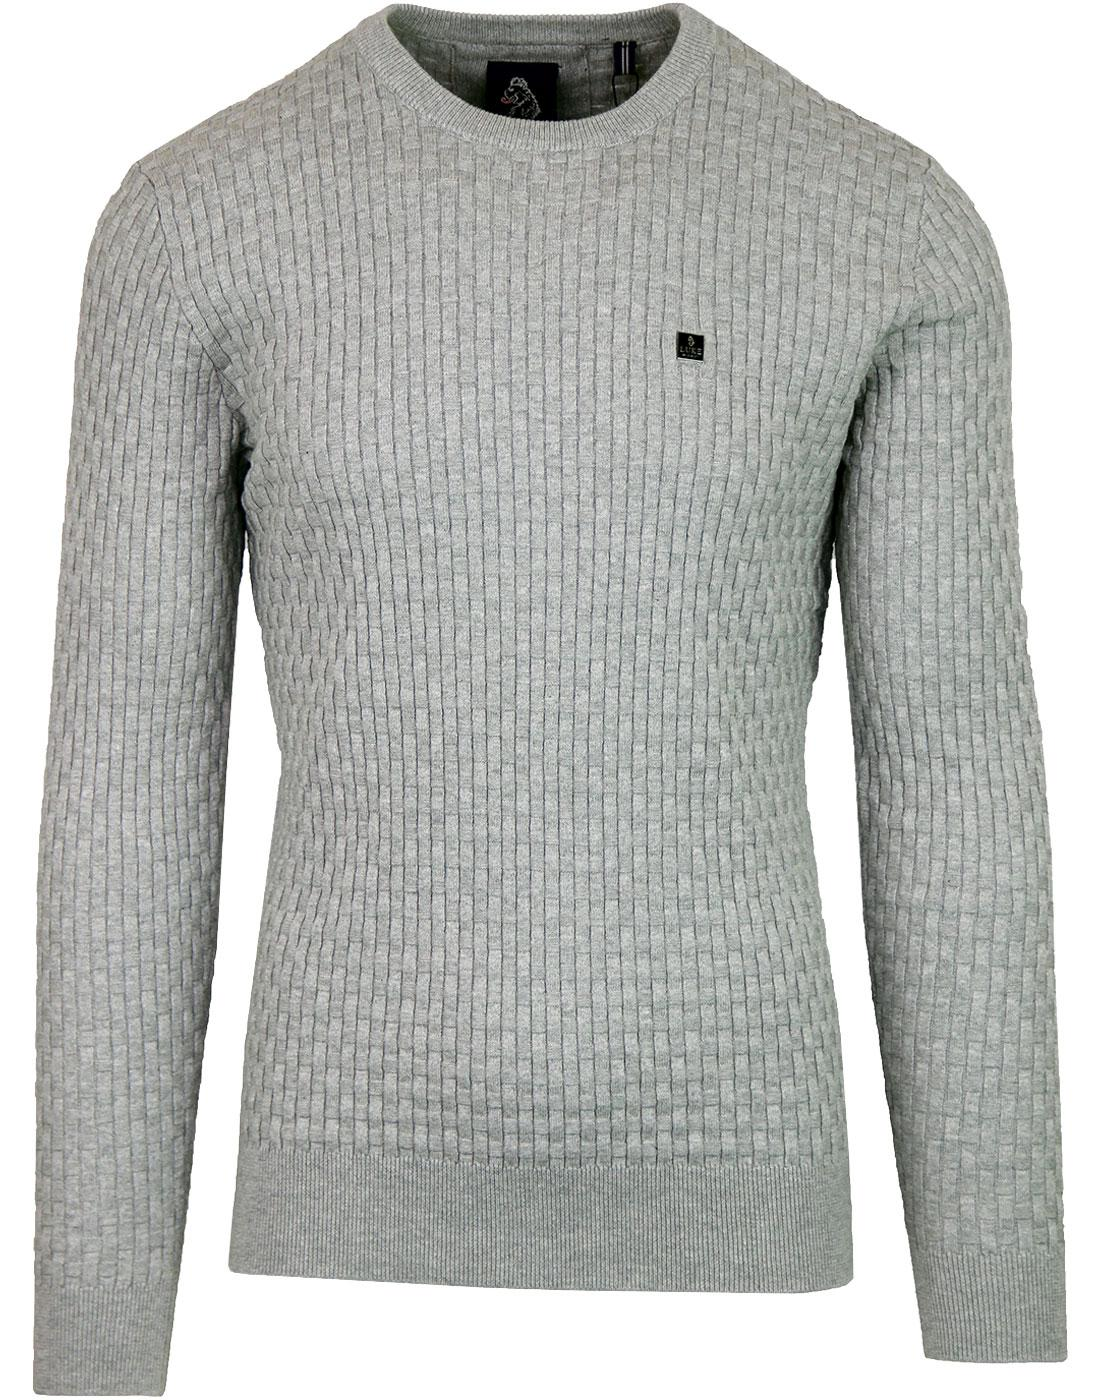 Binary LUKE 1977 Retro Basket Weave Jumper